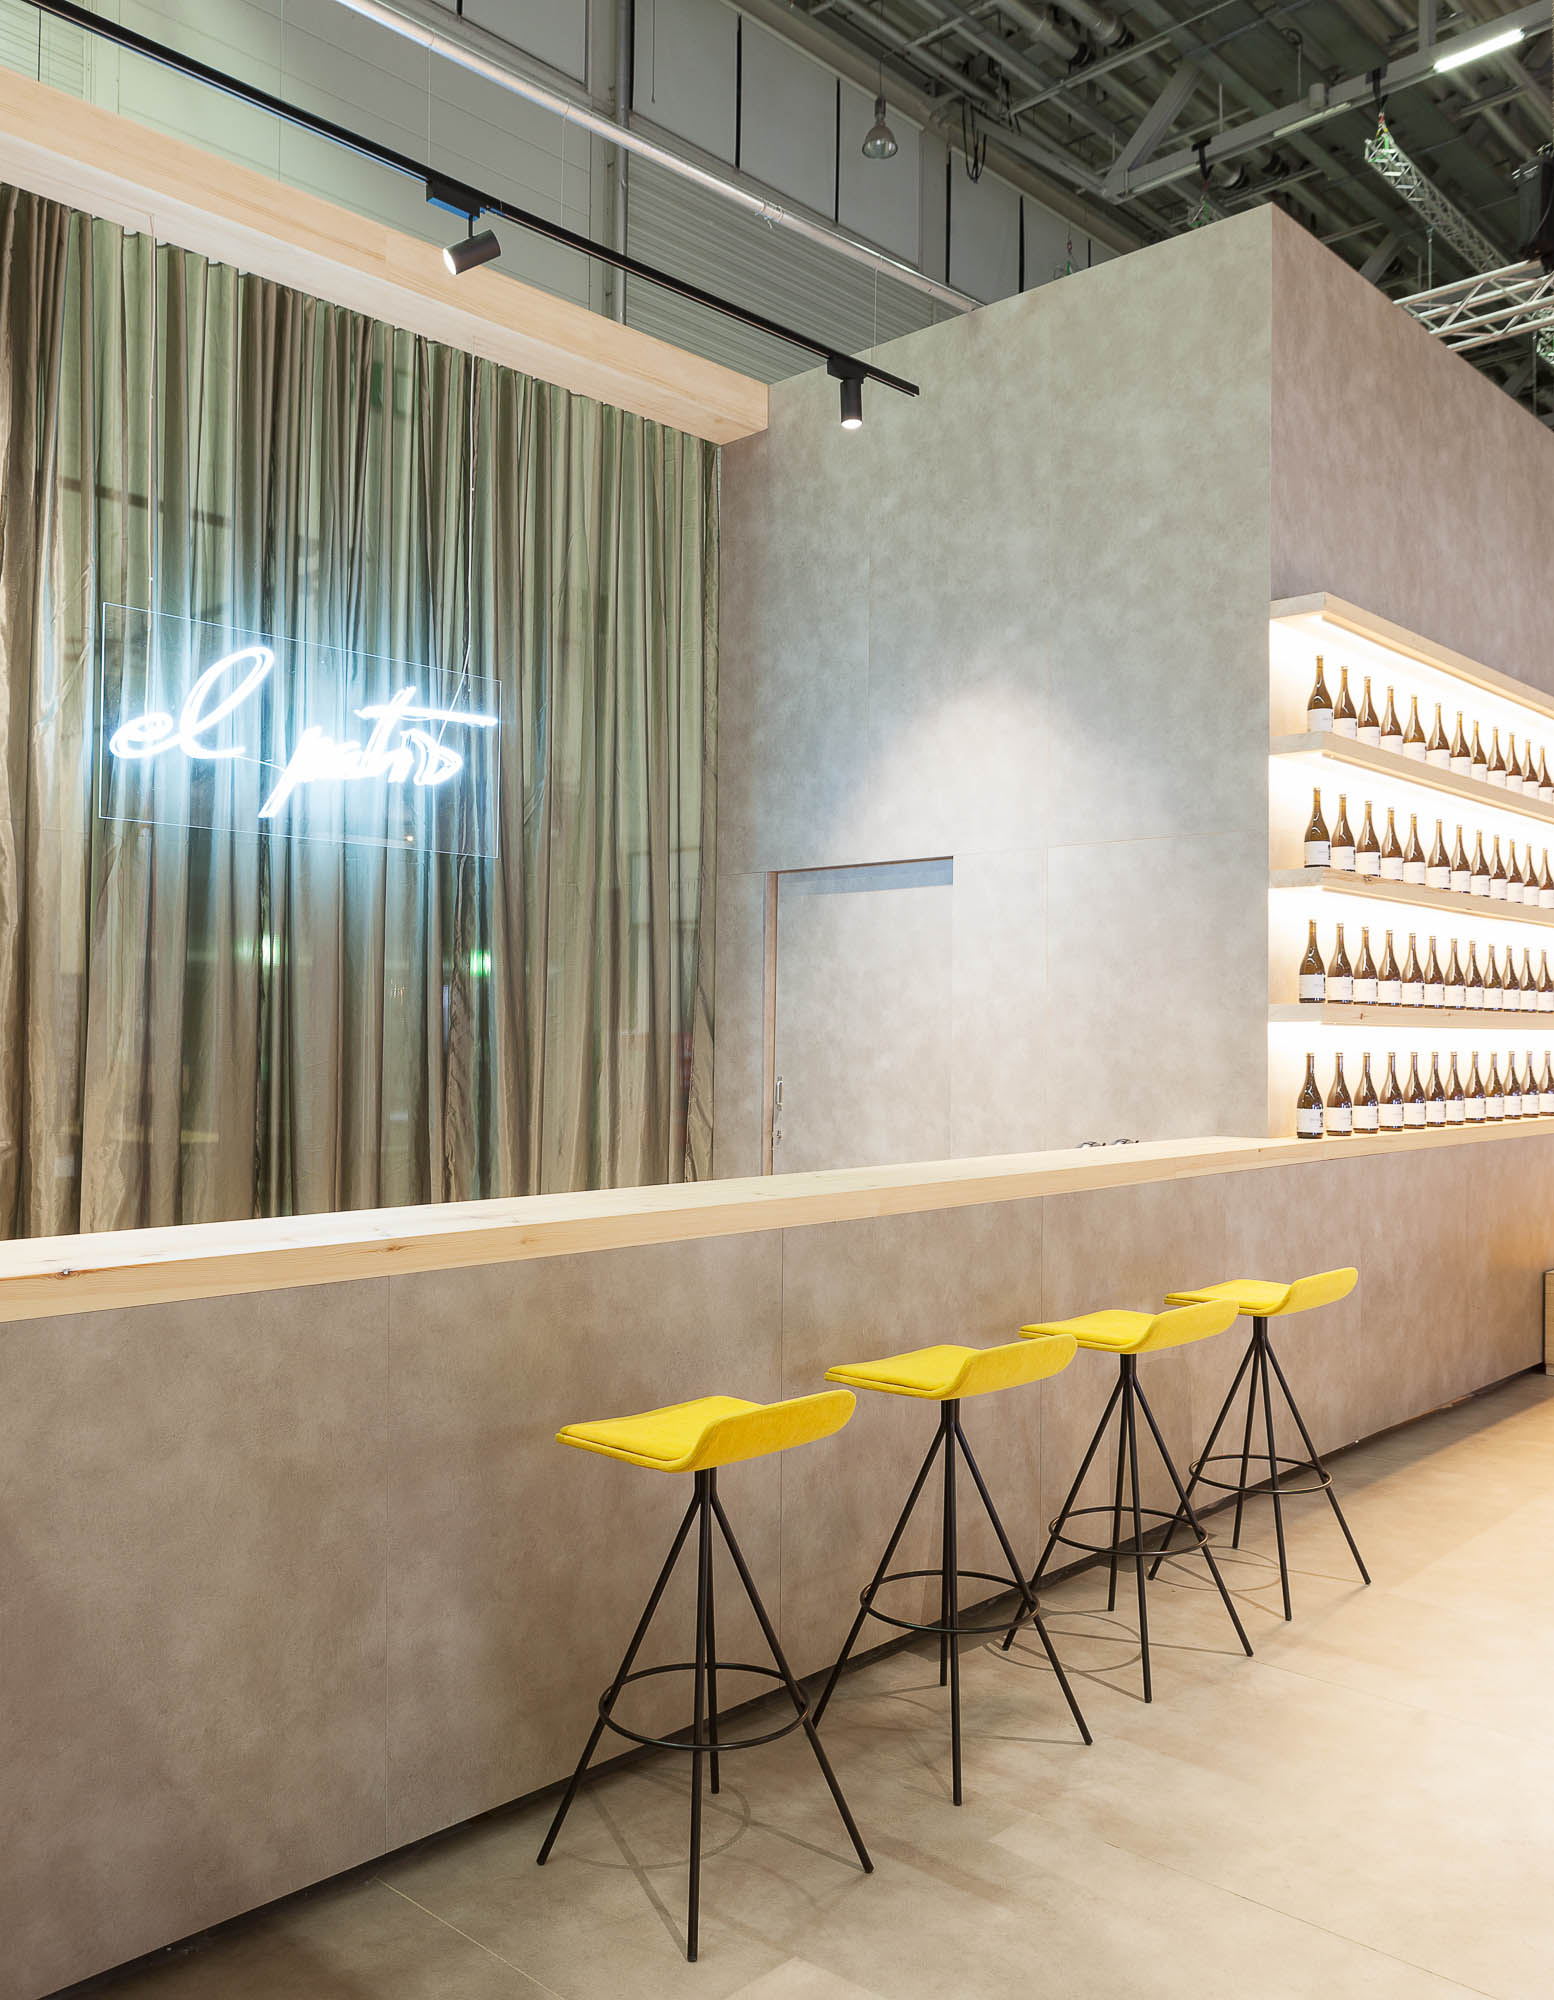 IMG_1805_Orgatec18_Forma5_181022-Edit_Retouched_LowRes